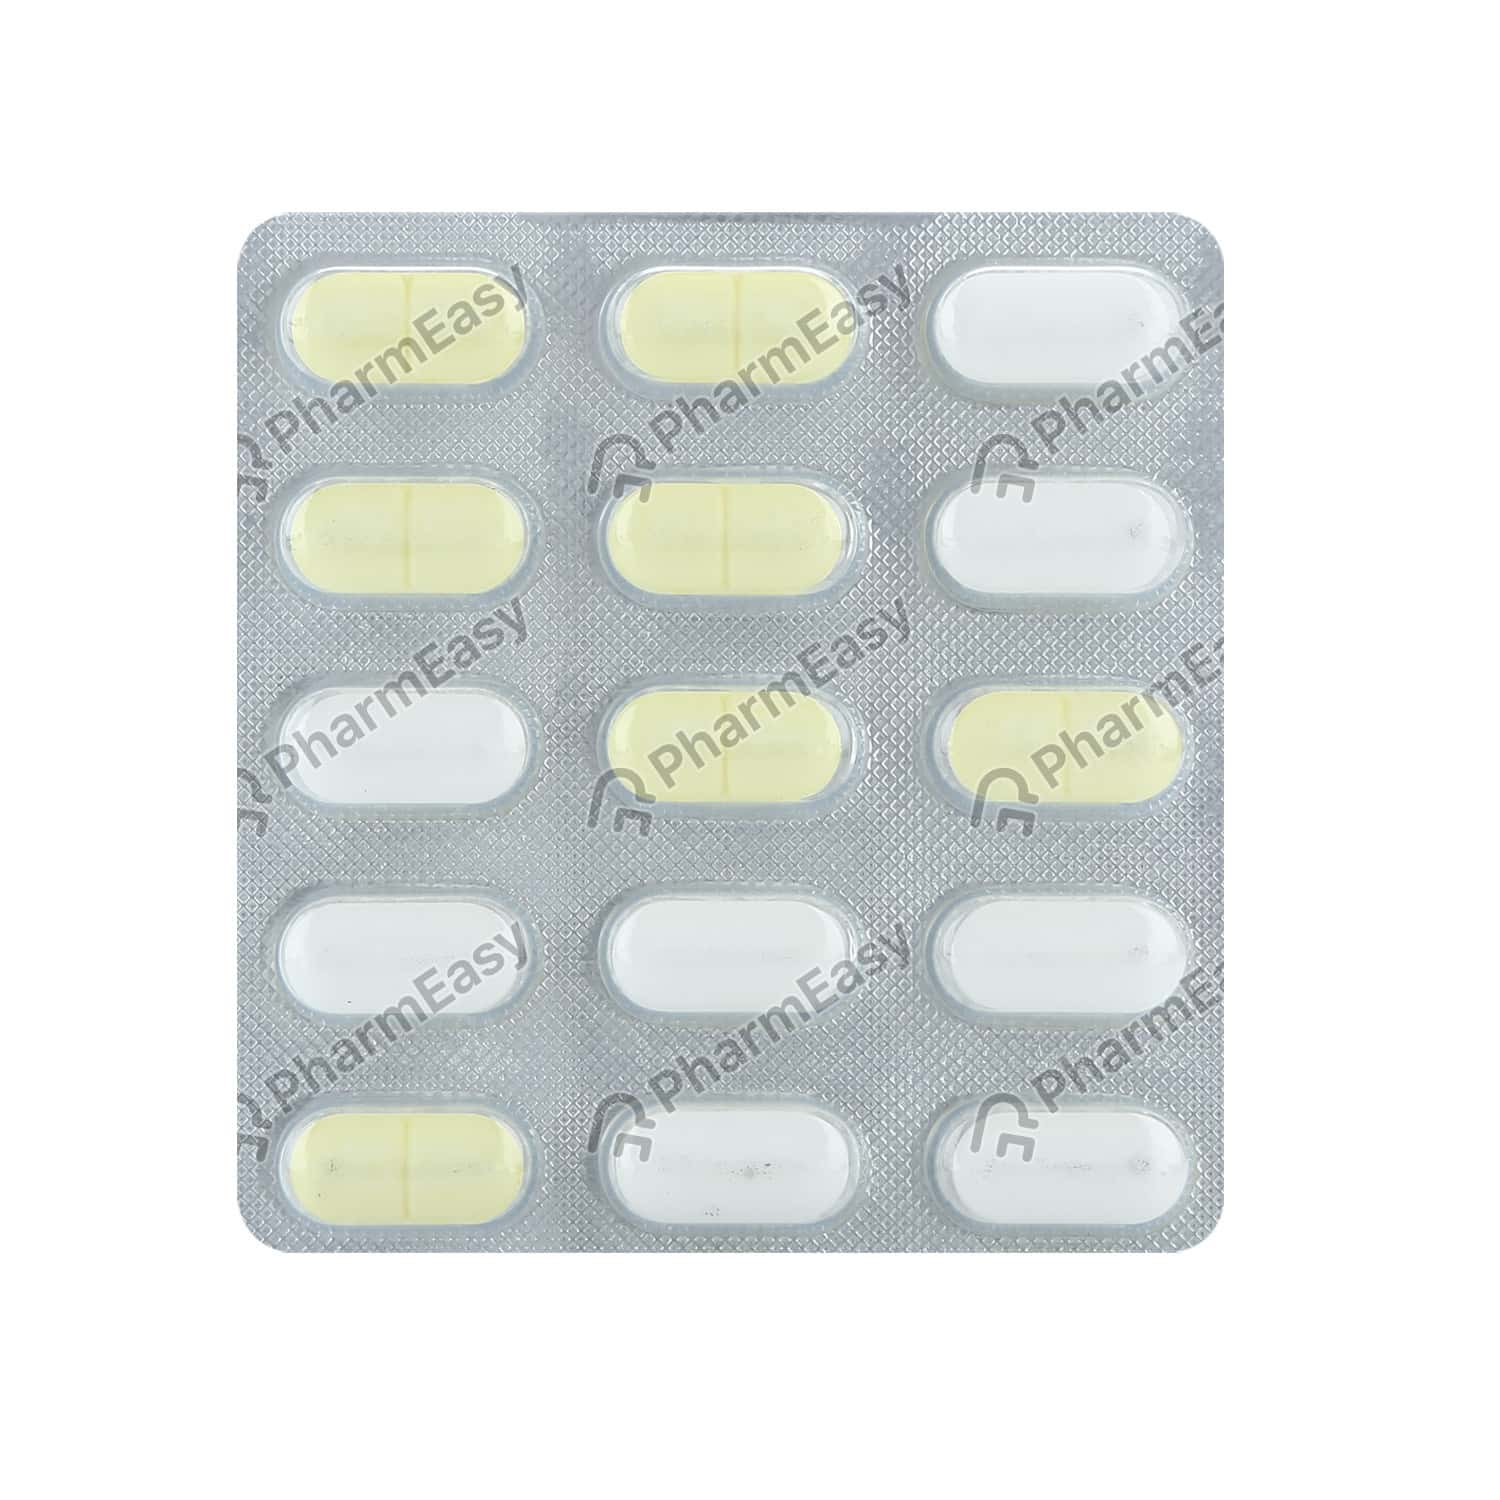 Exermet Gm 501mg Strip Of 15 Tablets